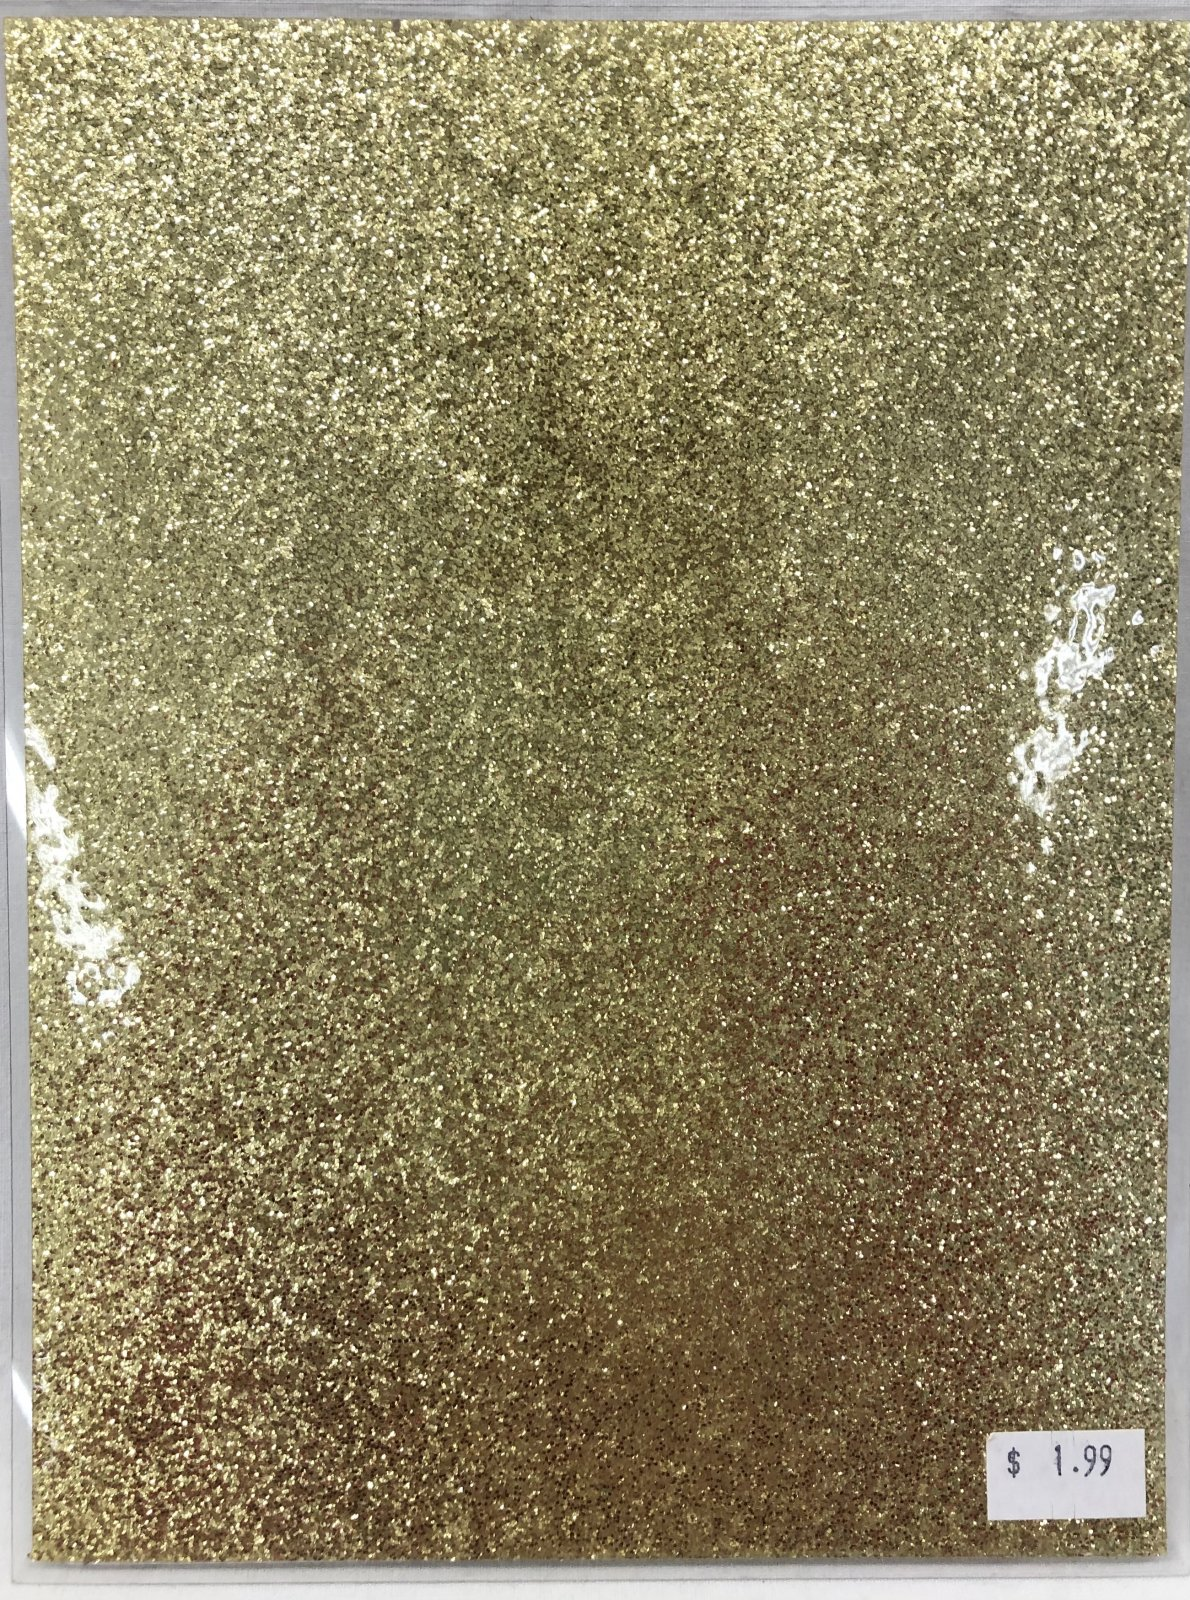 Stained Glass Acrylic Sheeting - Gold Sparkle / Silver Sparkle